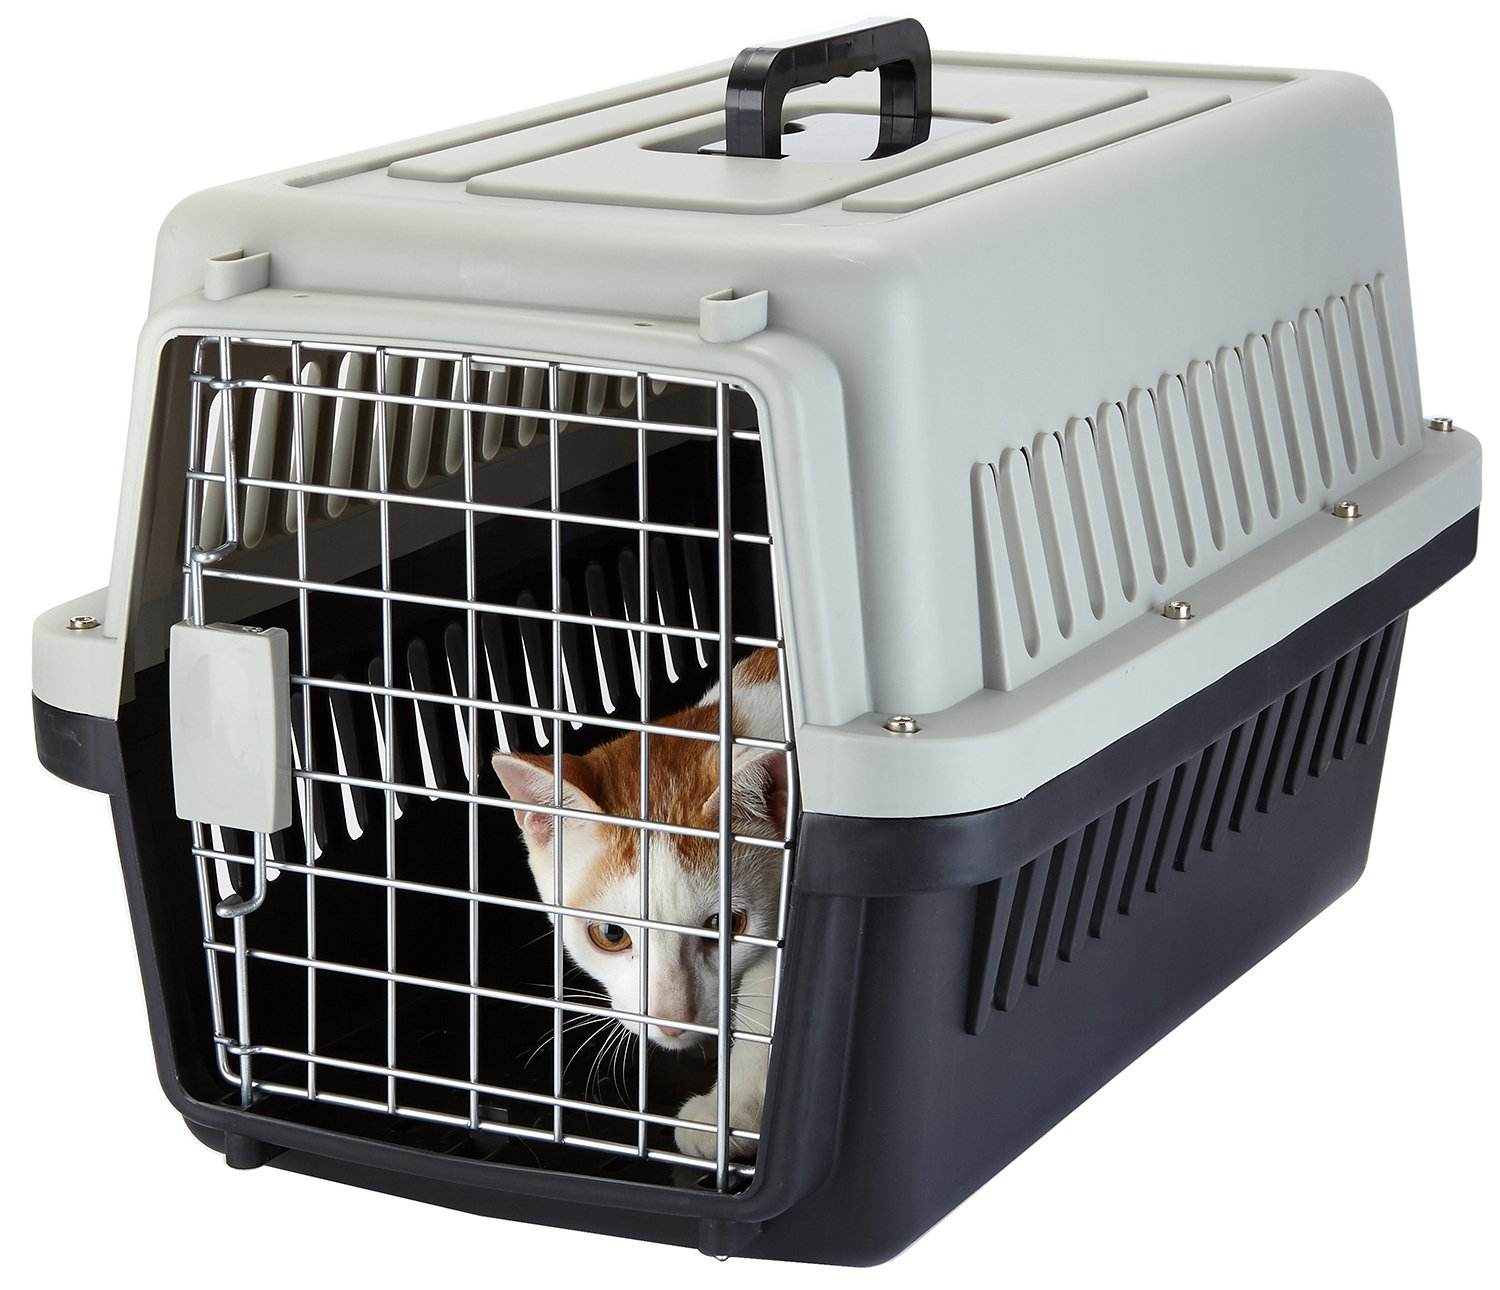 Yvettevans Portable Airline Approved Top-Load Pet Kennel